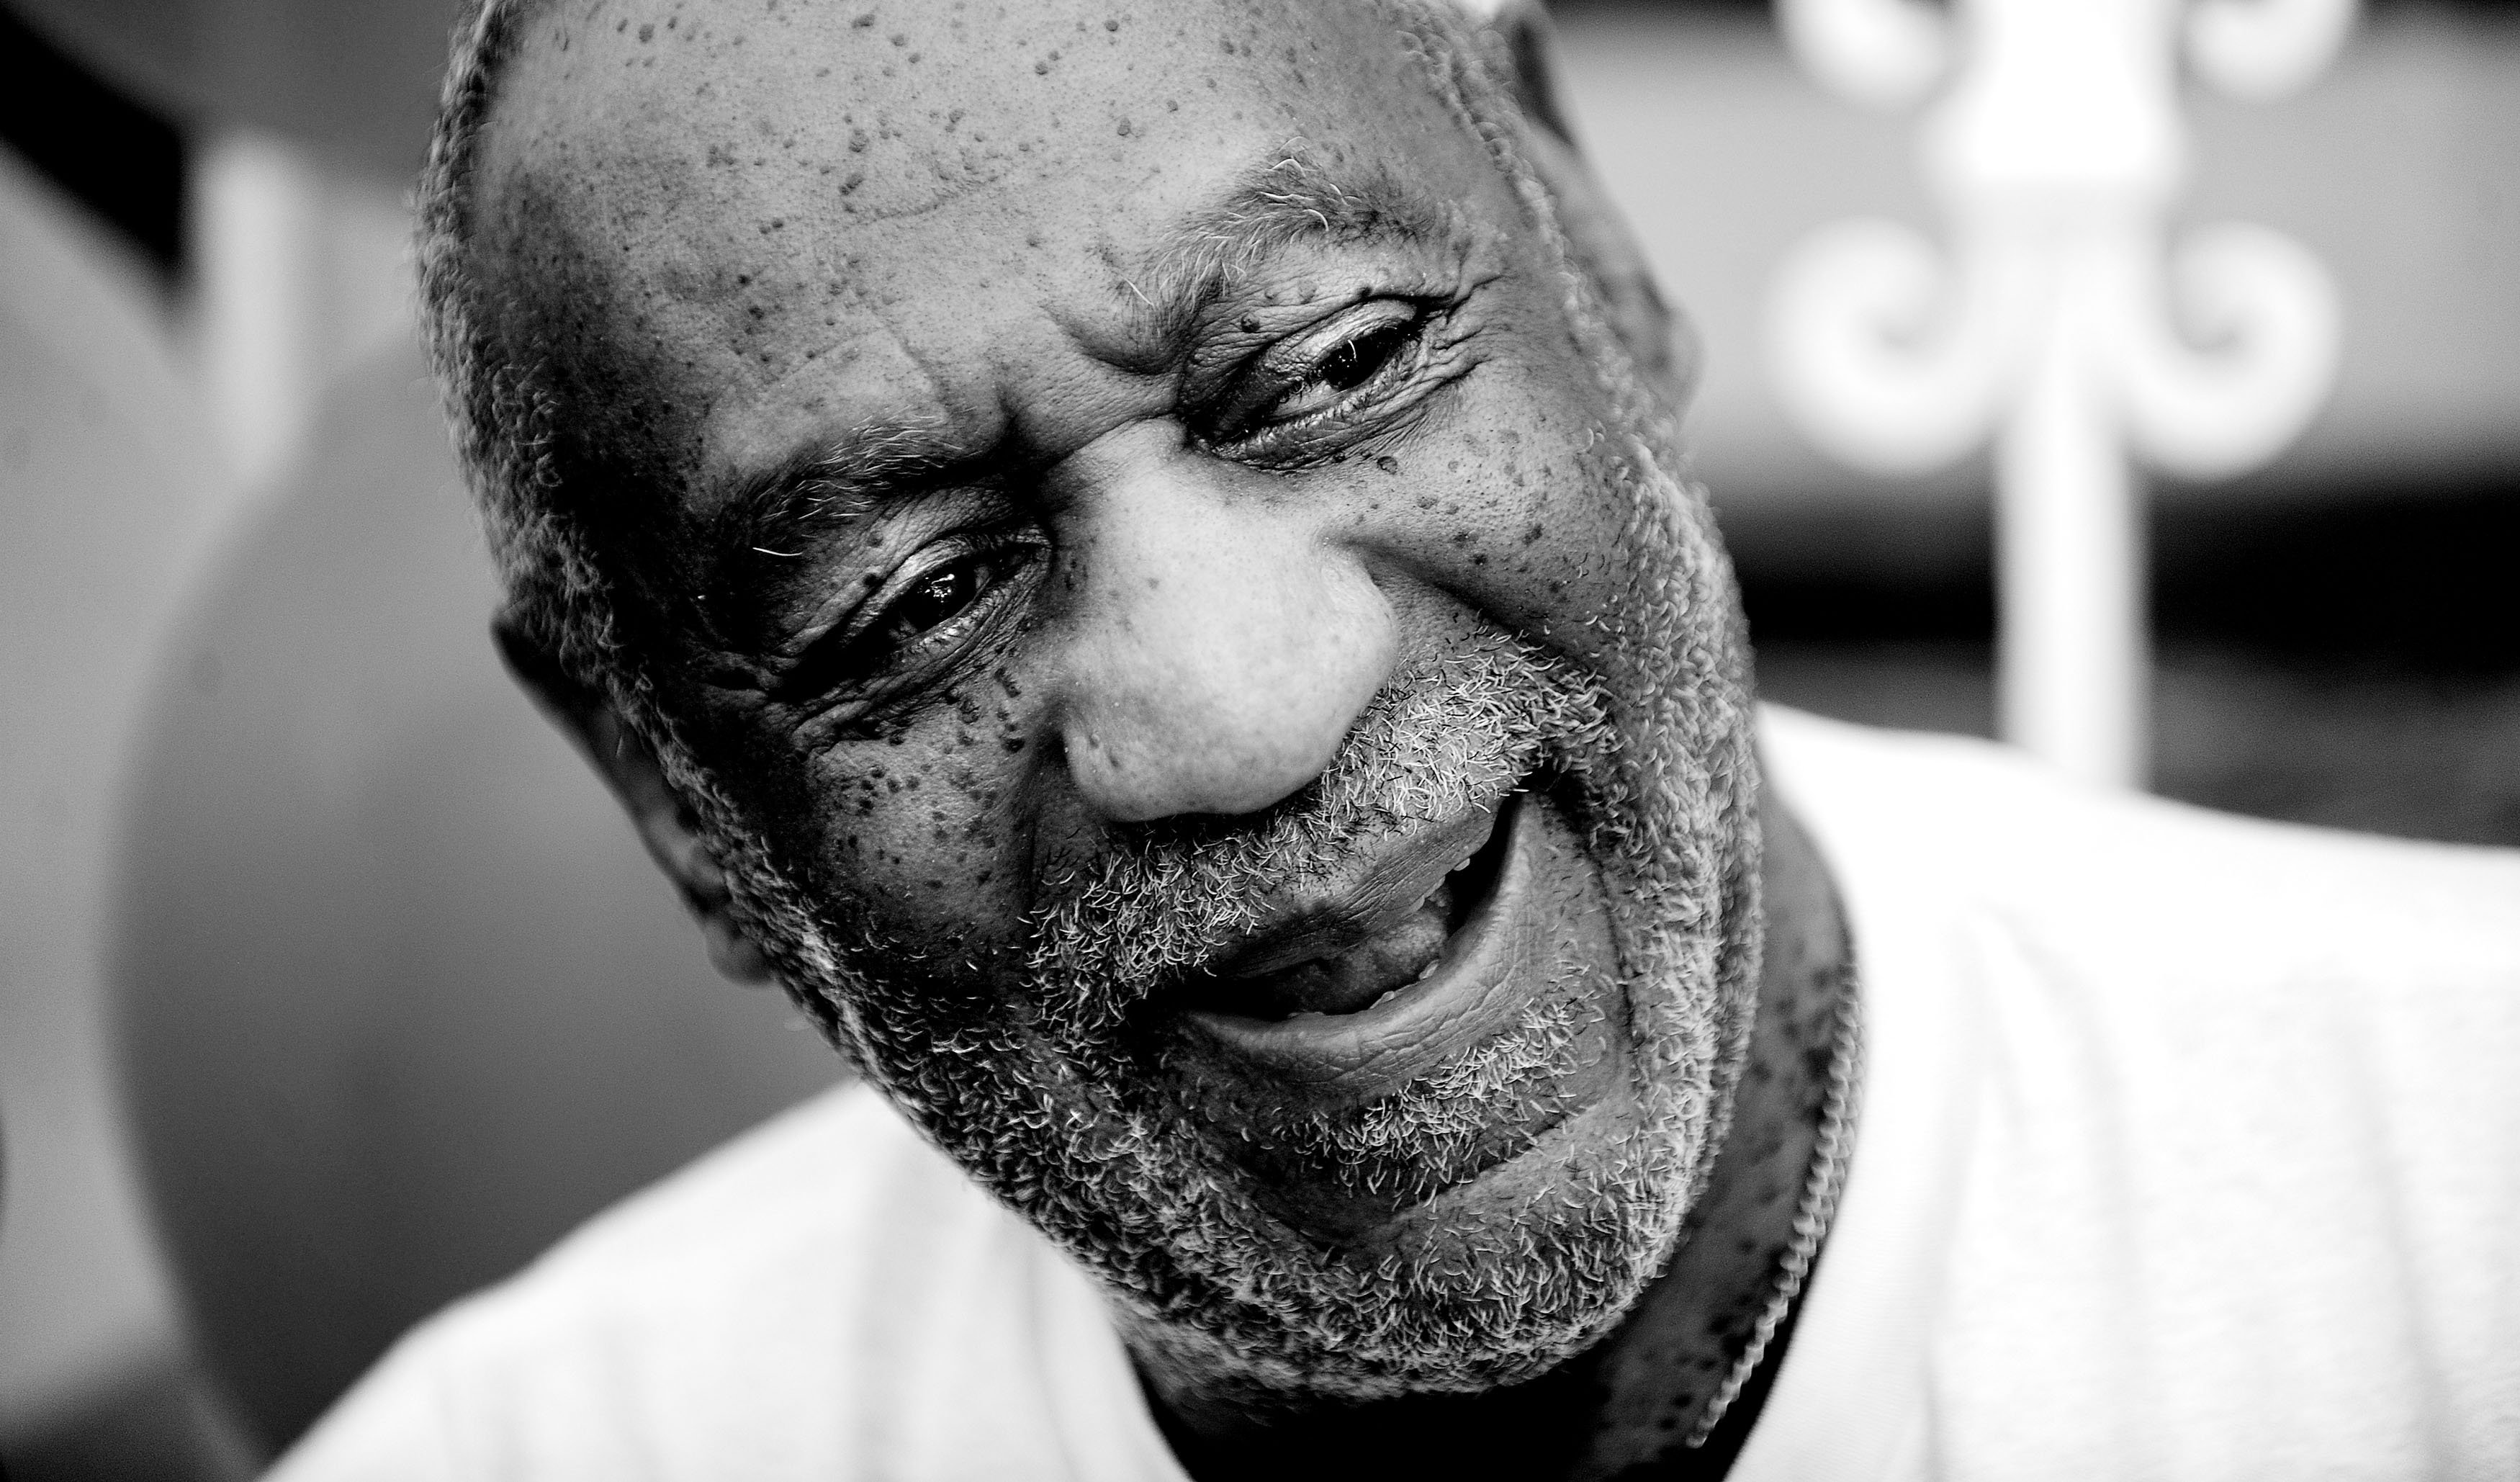 Comedian Bill Cosby speaks during the celebration of the 55th anniversary of a Washington institution Ben's Chili Bowl on August 22, 2013 in Washington, DC.  Credit: Courtesy of TNS.